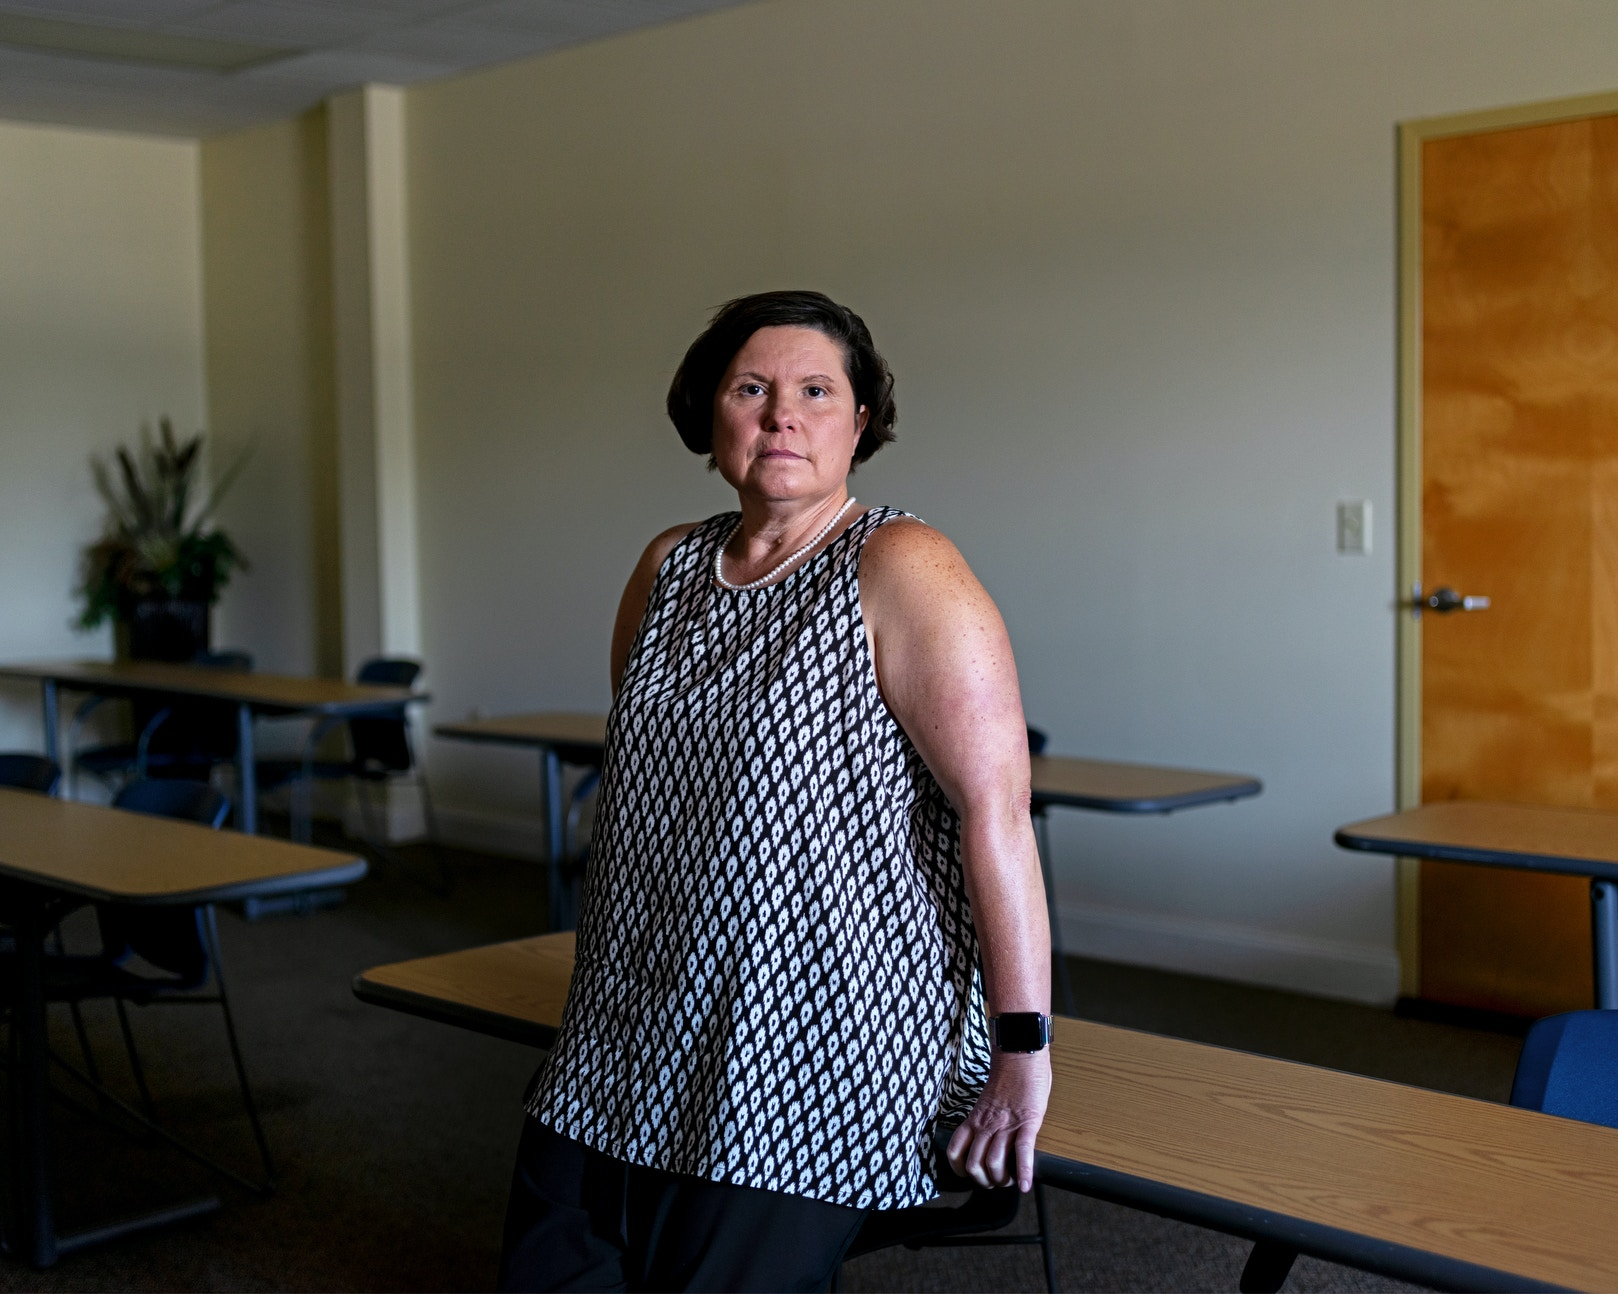 DECATUR, AL - August 19, 2020: Councilwoman Paige Bibbee at her office downtown. CREDIT: Johnathon Kelso for The Intercept.